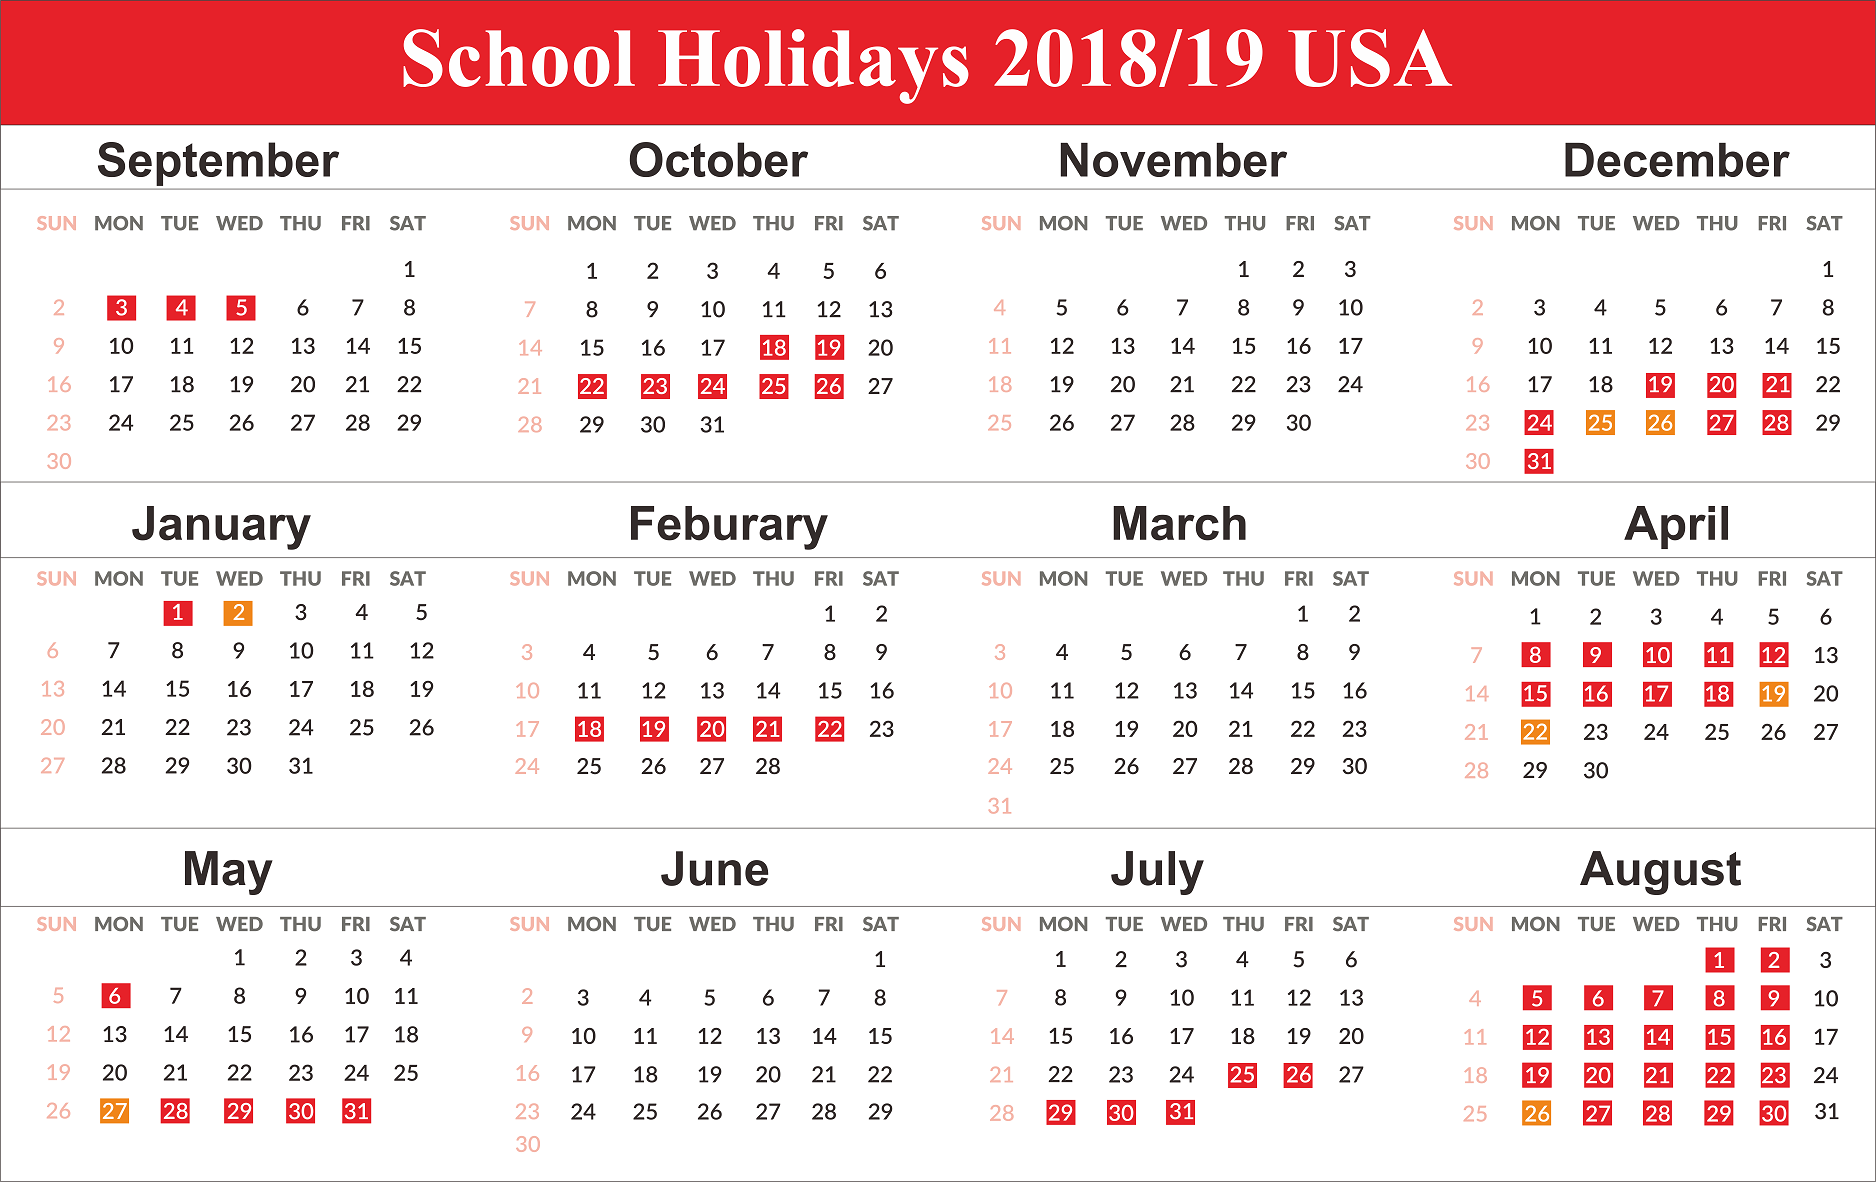 School Holidays 2019 for USA